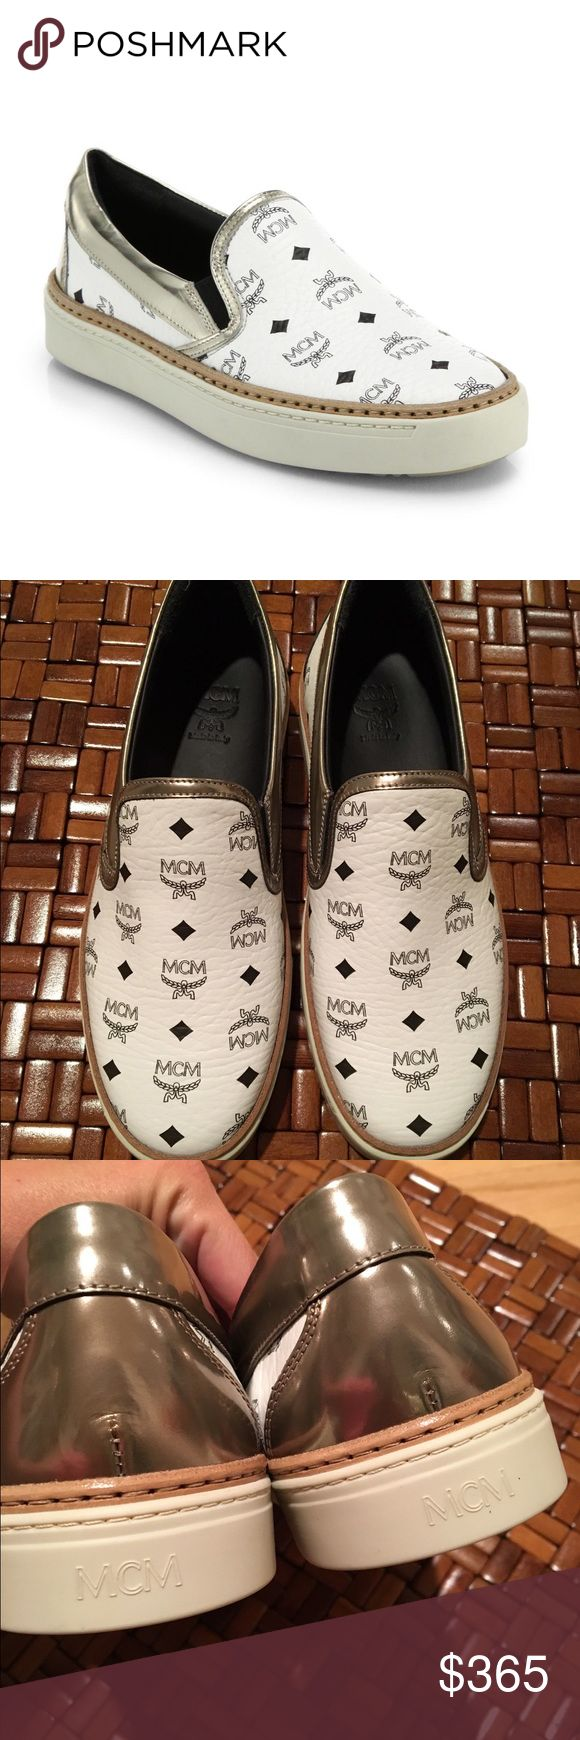 MCM Visetos Brand new authentic MCM Visetos in white. Size 39, but would probably fit 8.5, never worn. No box or dustbag. MCM Shoes Sneakers